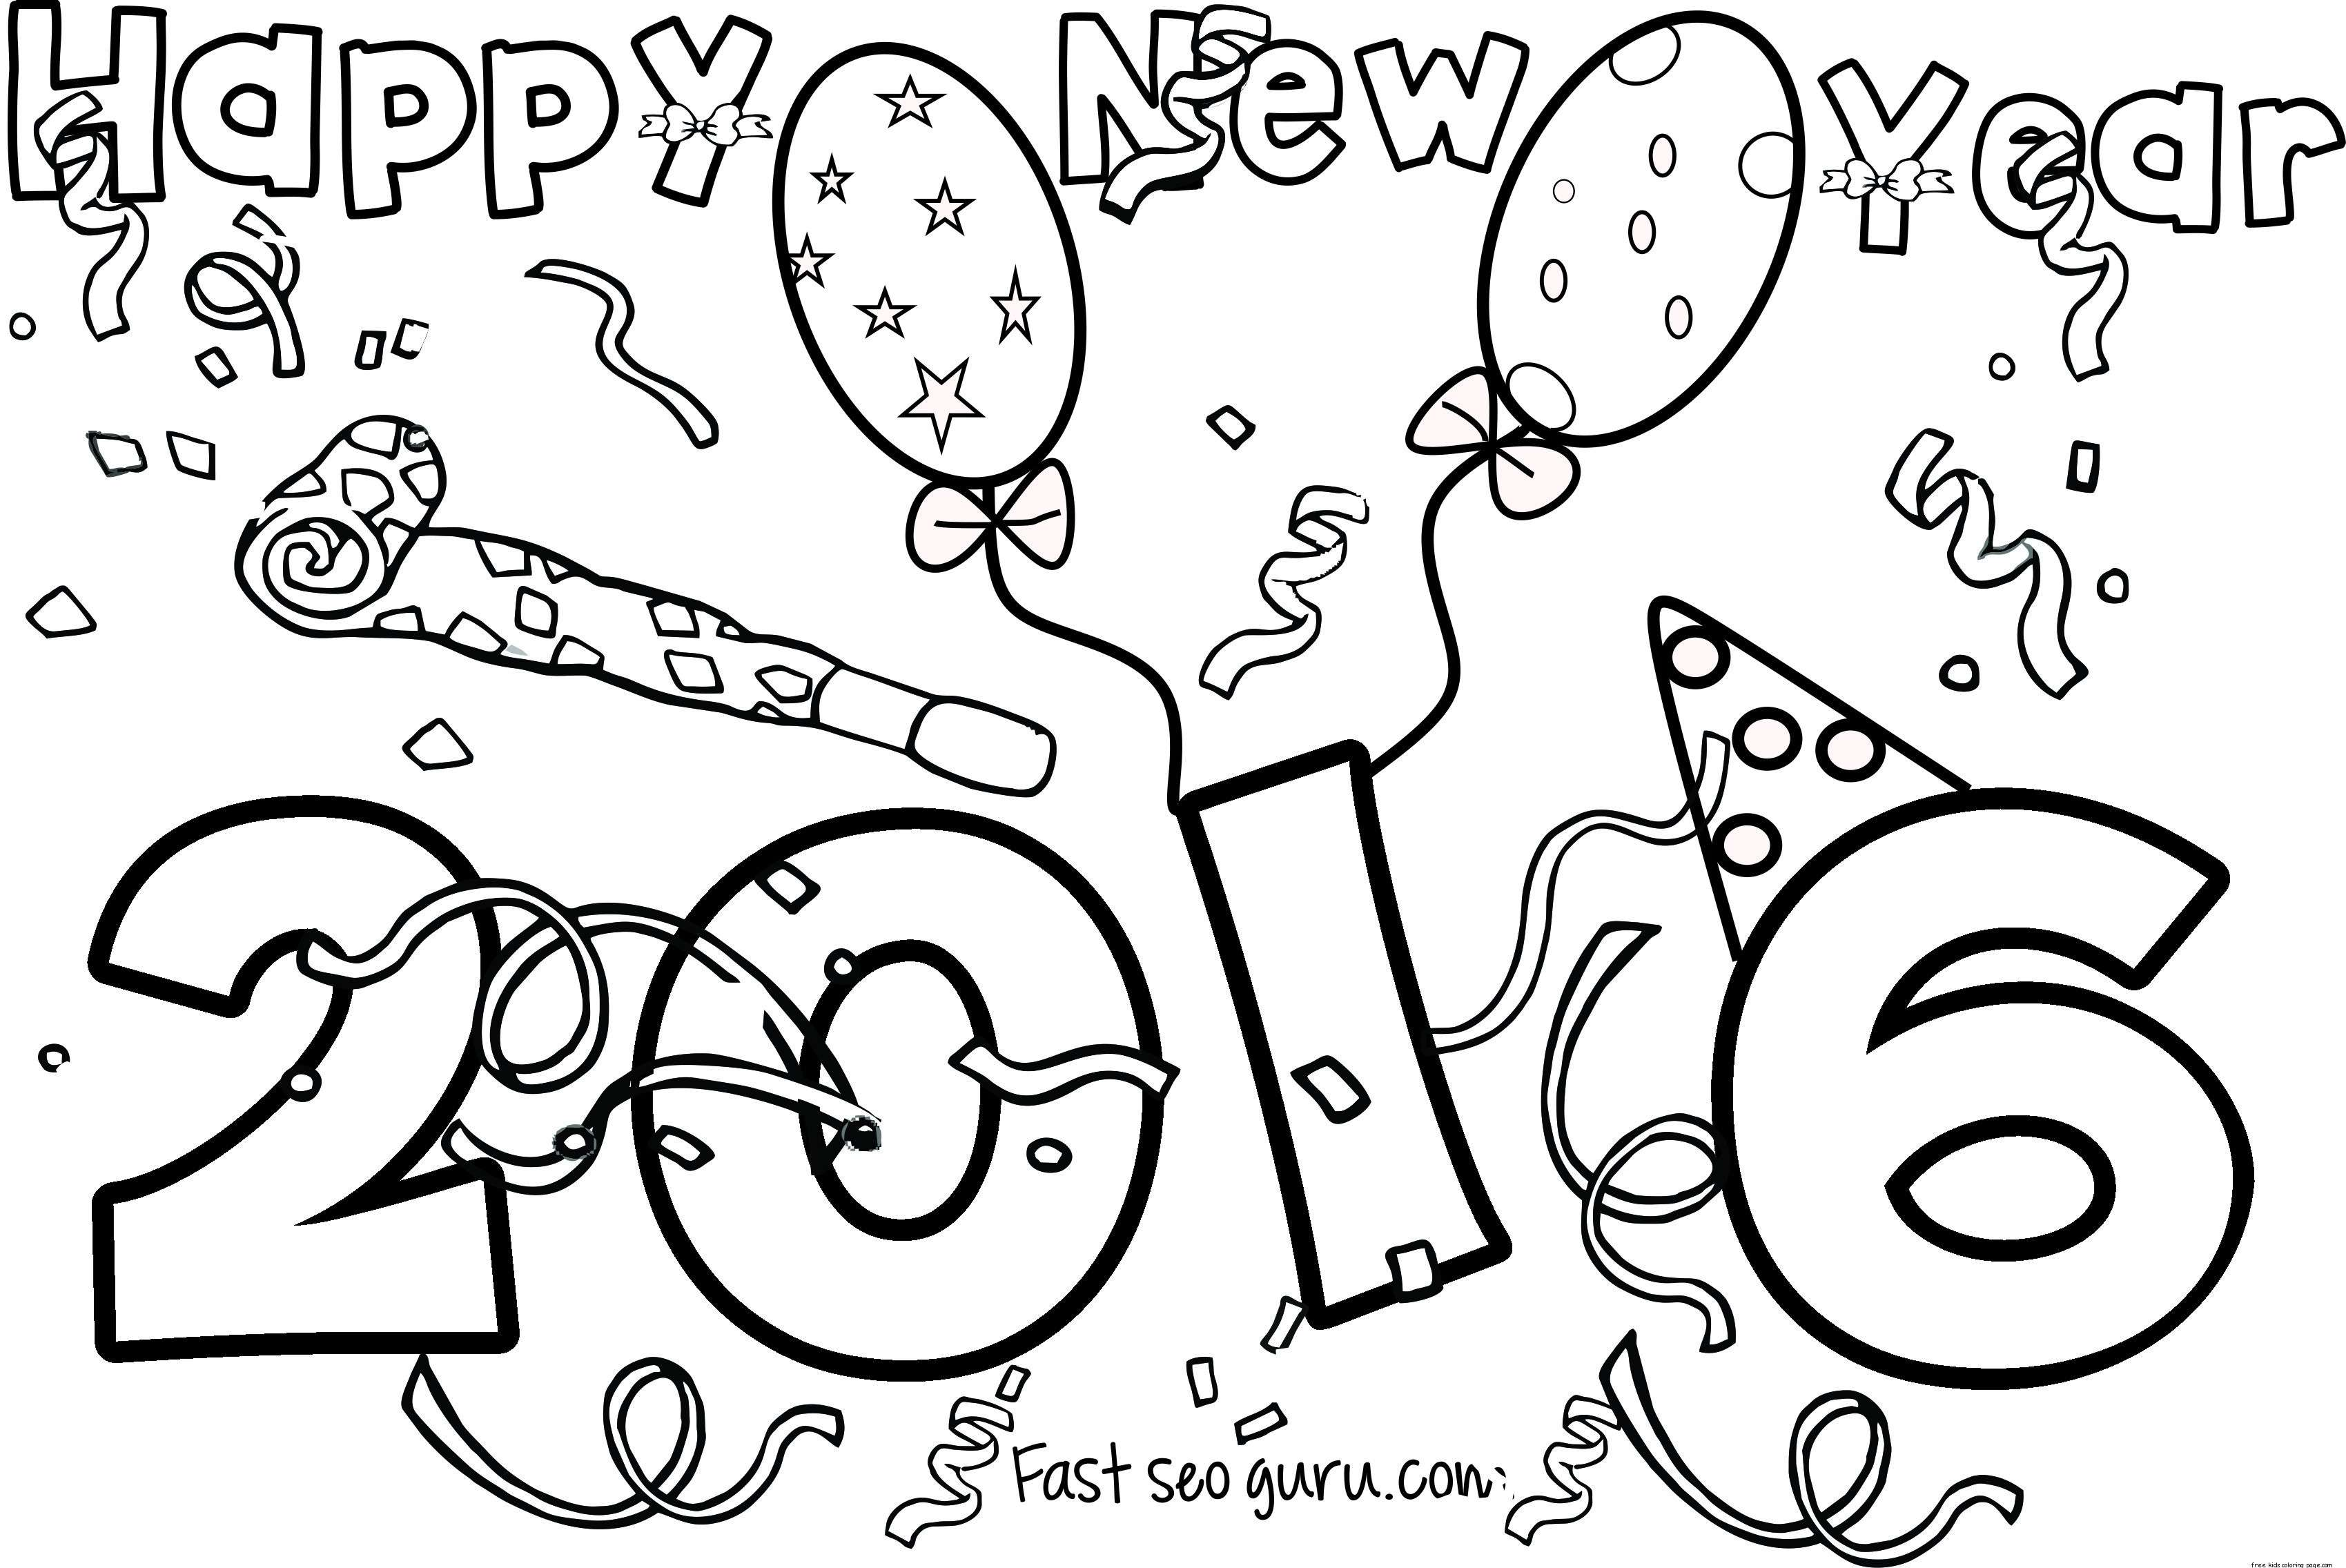 Merry Christmas And Happy New Year Coloring Pages With Little Bo Peep